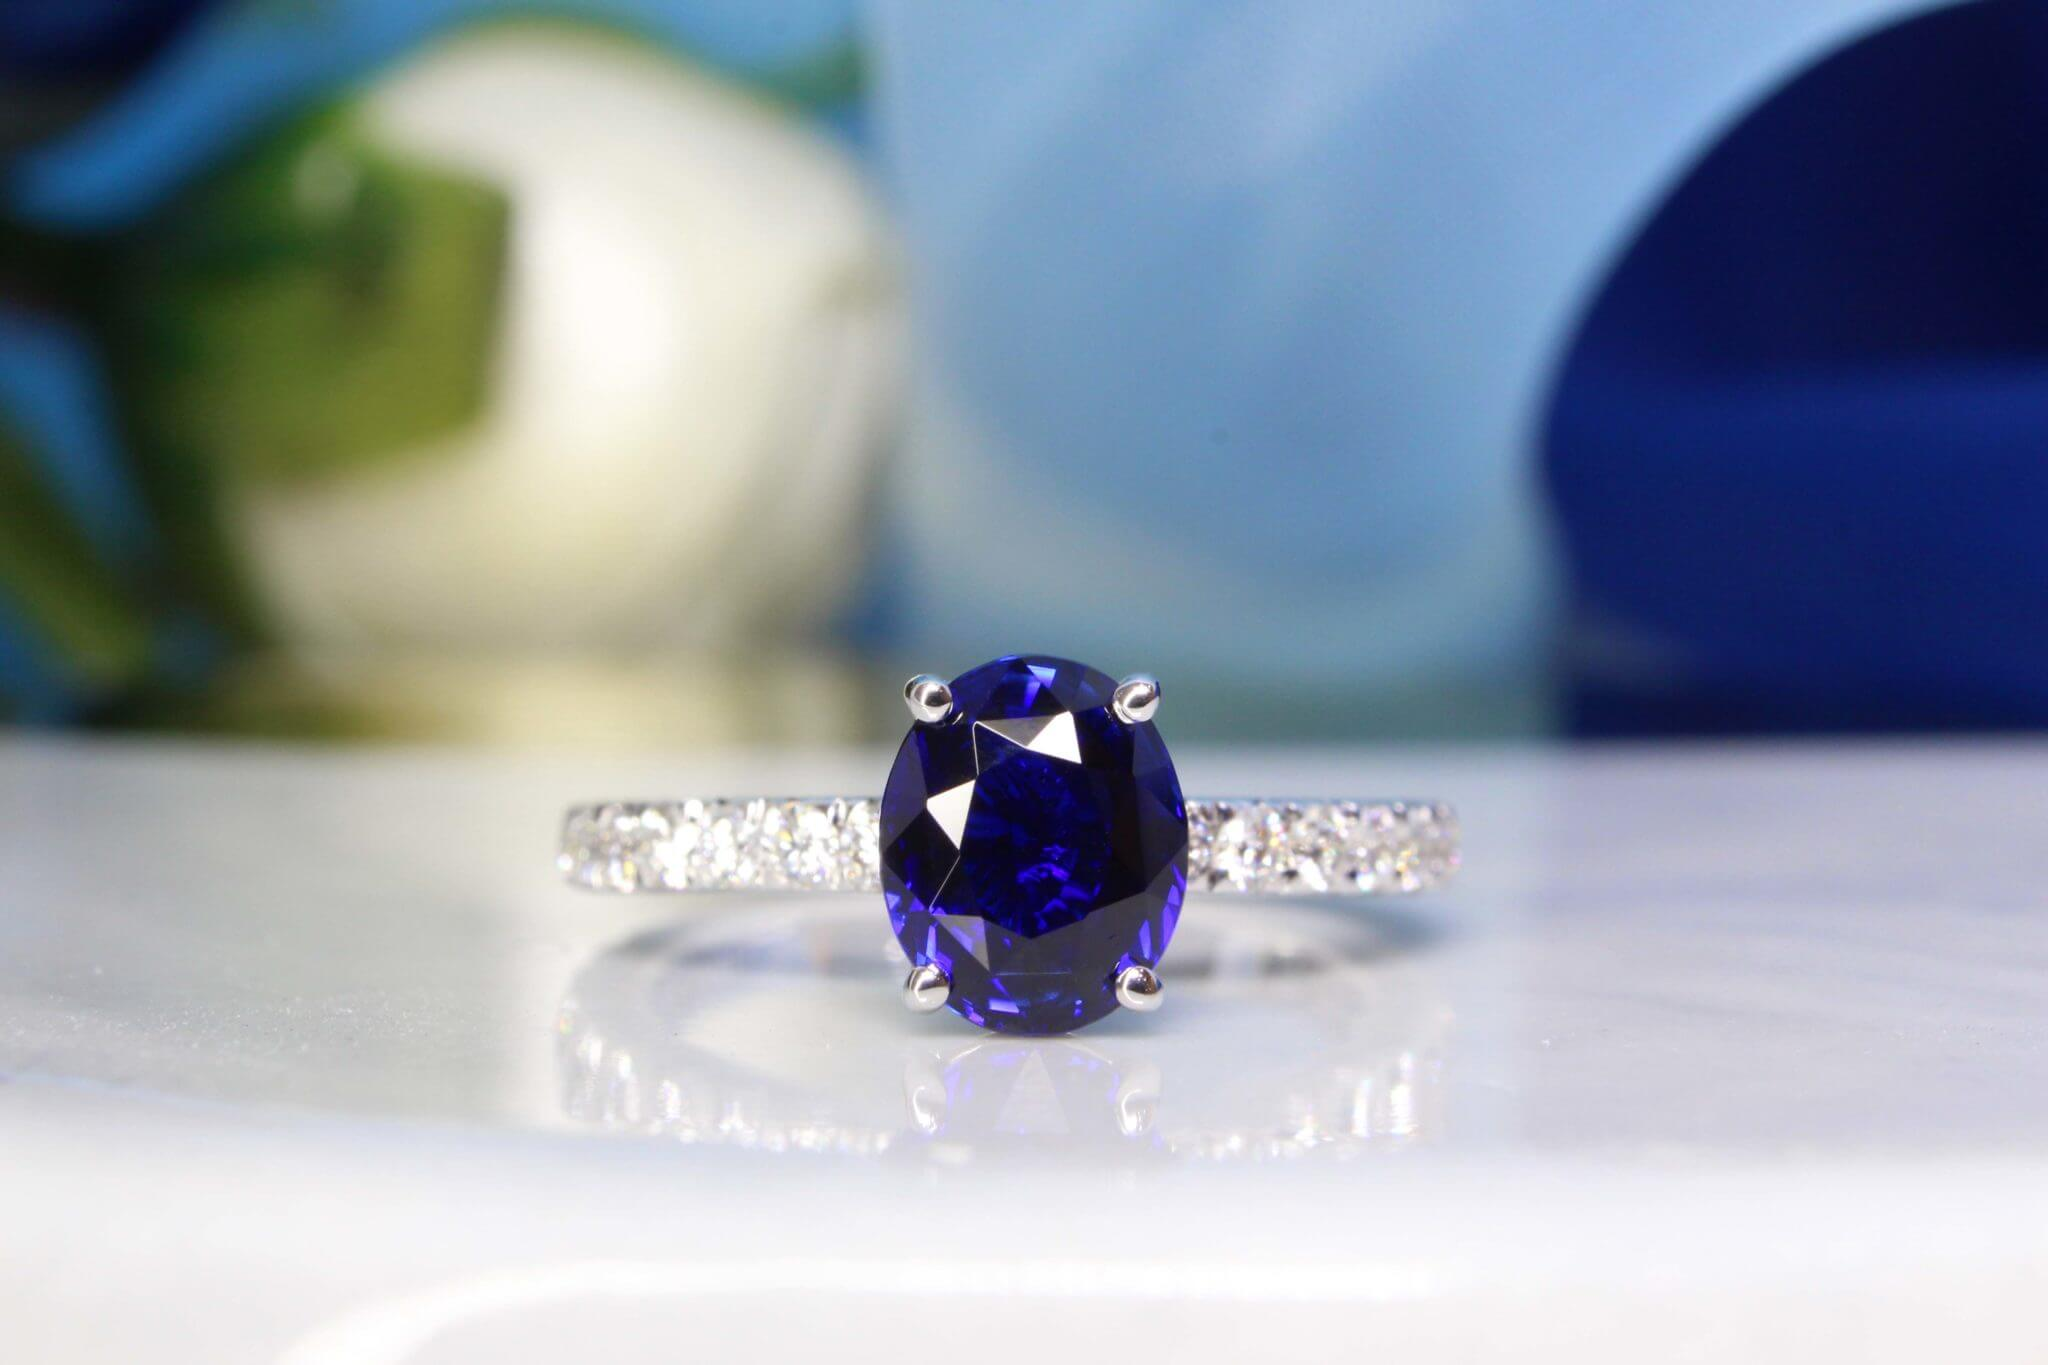 Vivid Royal Blue Sapphire Gemstone without heated treatment on the gemstone - Customised for the couple for an eternity love, perfect gemstone with a vivid colour, high clarity, and magnificent luminosity. Singapore Customised Jeweller in Engagement Ring and Wedding Jewellery with Sapphire Gemstone.